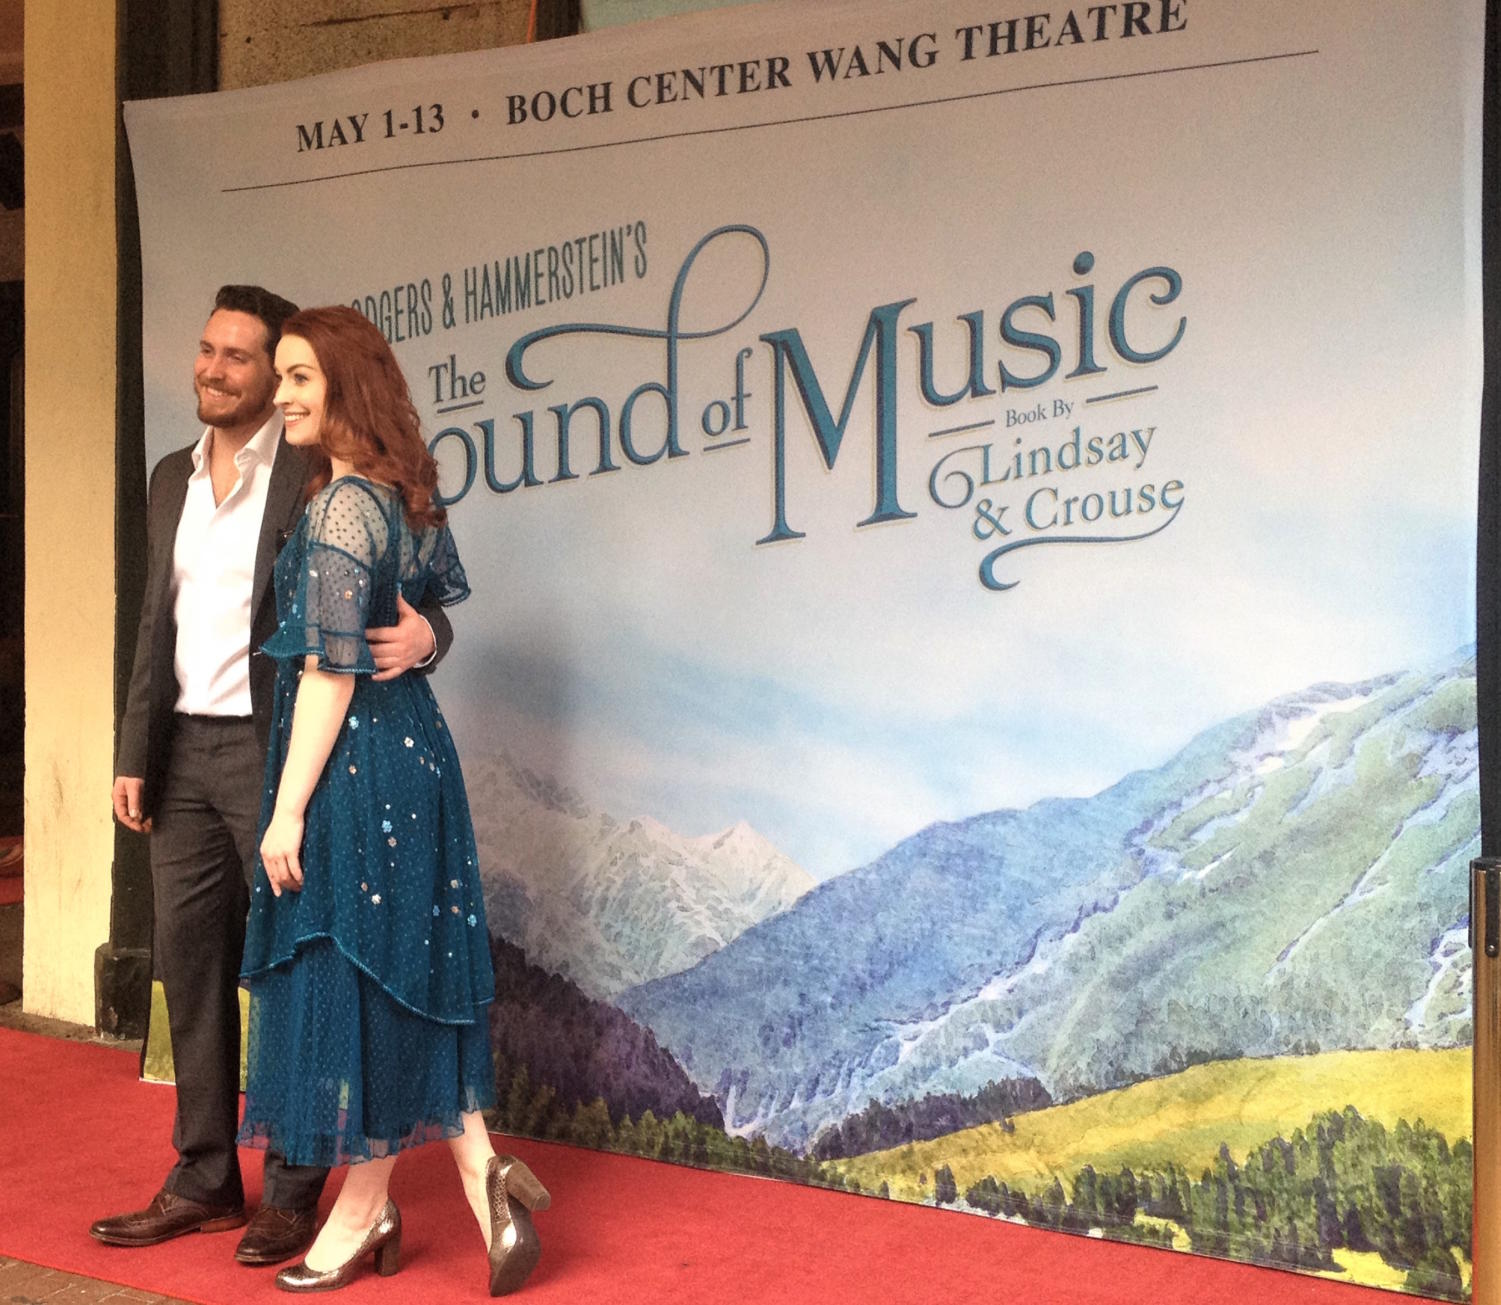 Jill-Christine Wiley (Maria) and Mike McLean (Captain von Trapp) on the red carpet outside Boch Center in Boston.